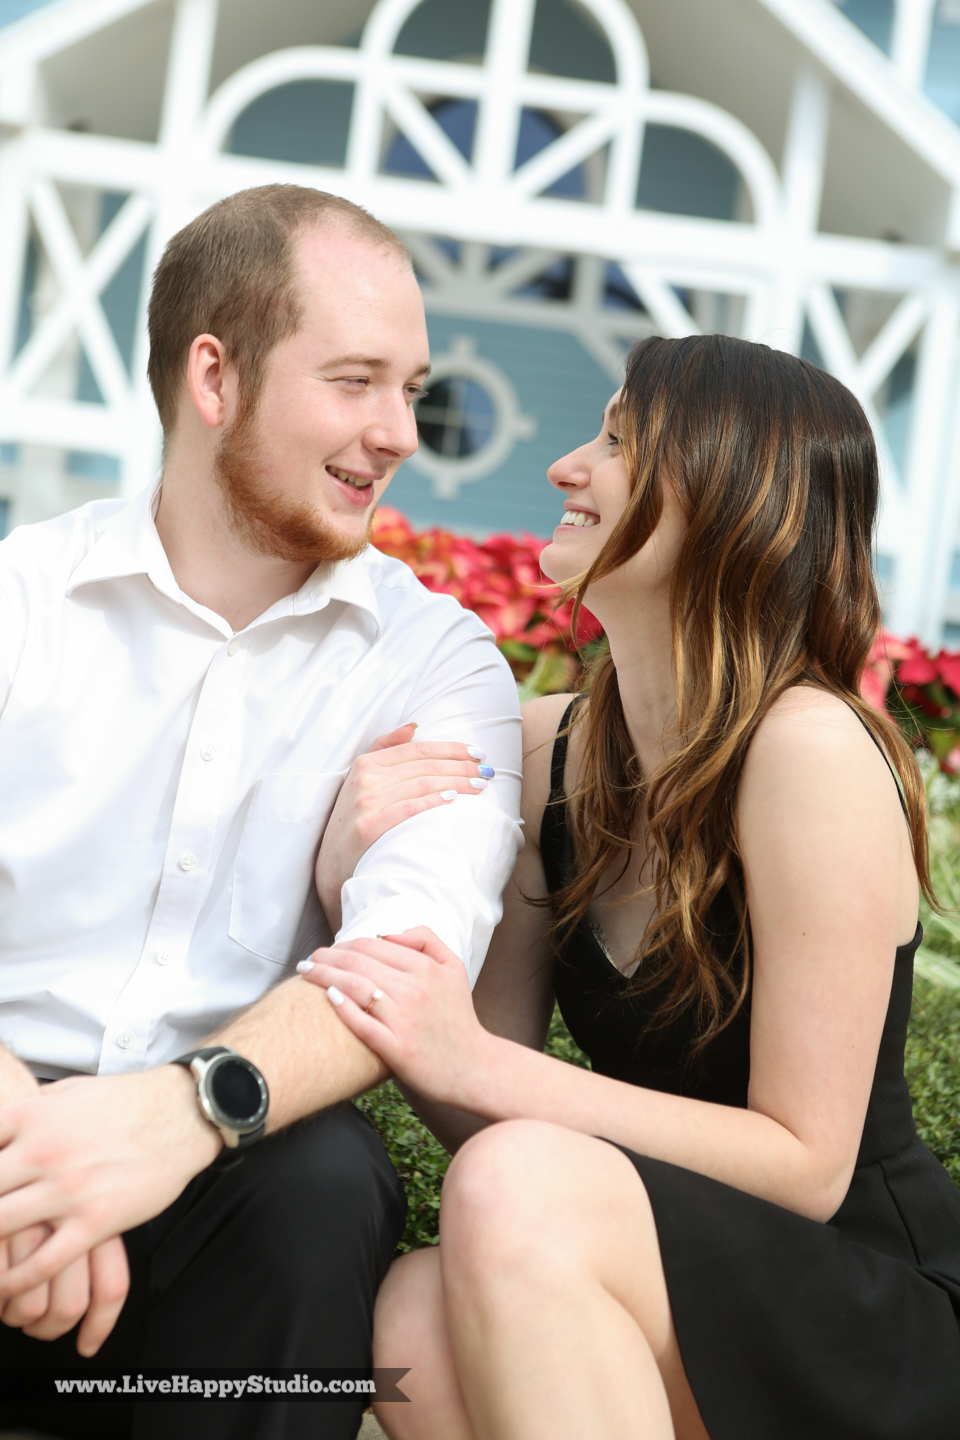 engagement-photographer-orlando-disney-photography-live-happy-studio-19.jpg